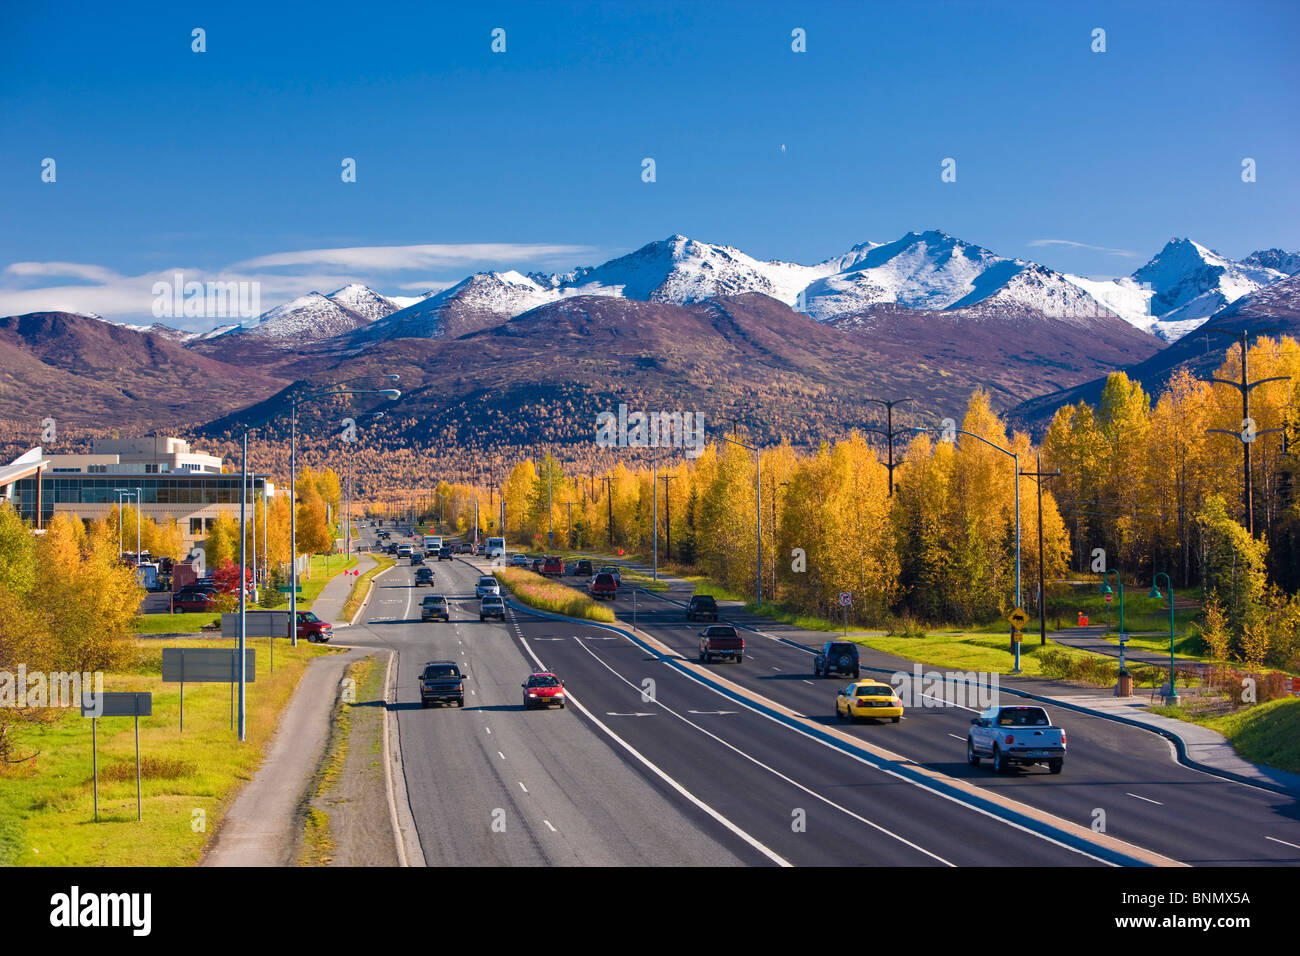 Traffic on Tudor Road looking east towards the Chugach Mountains during Autumn, Anchorage, Alaska - Stock Image